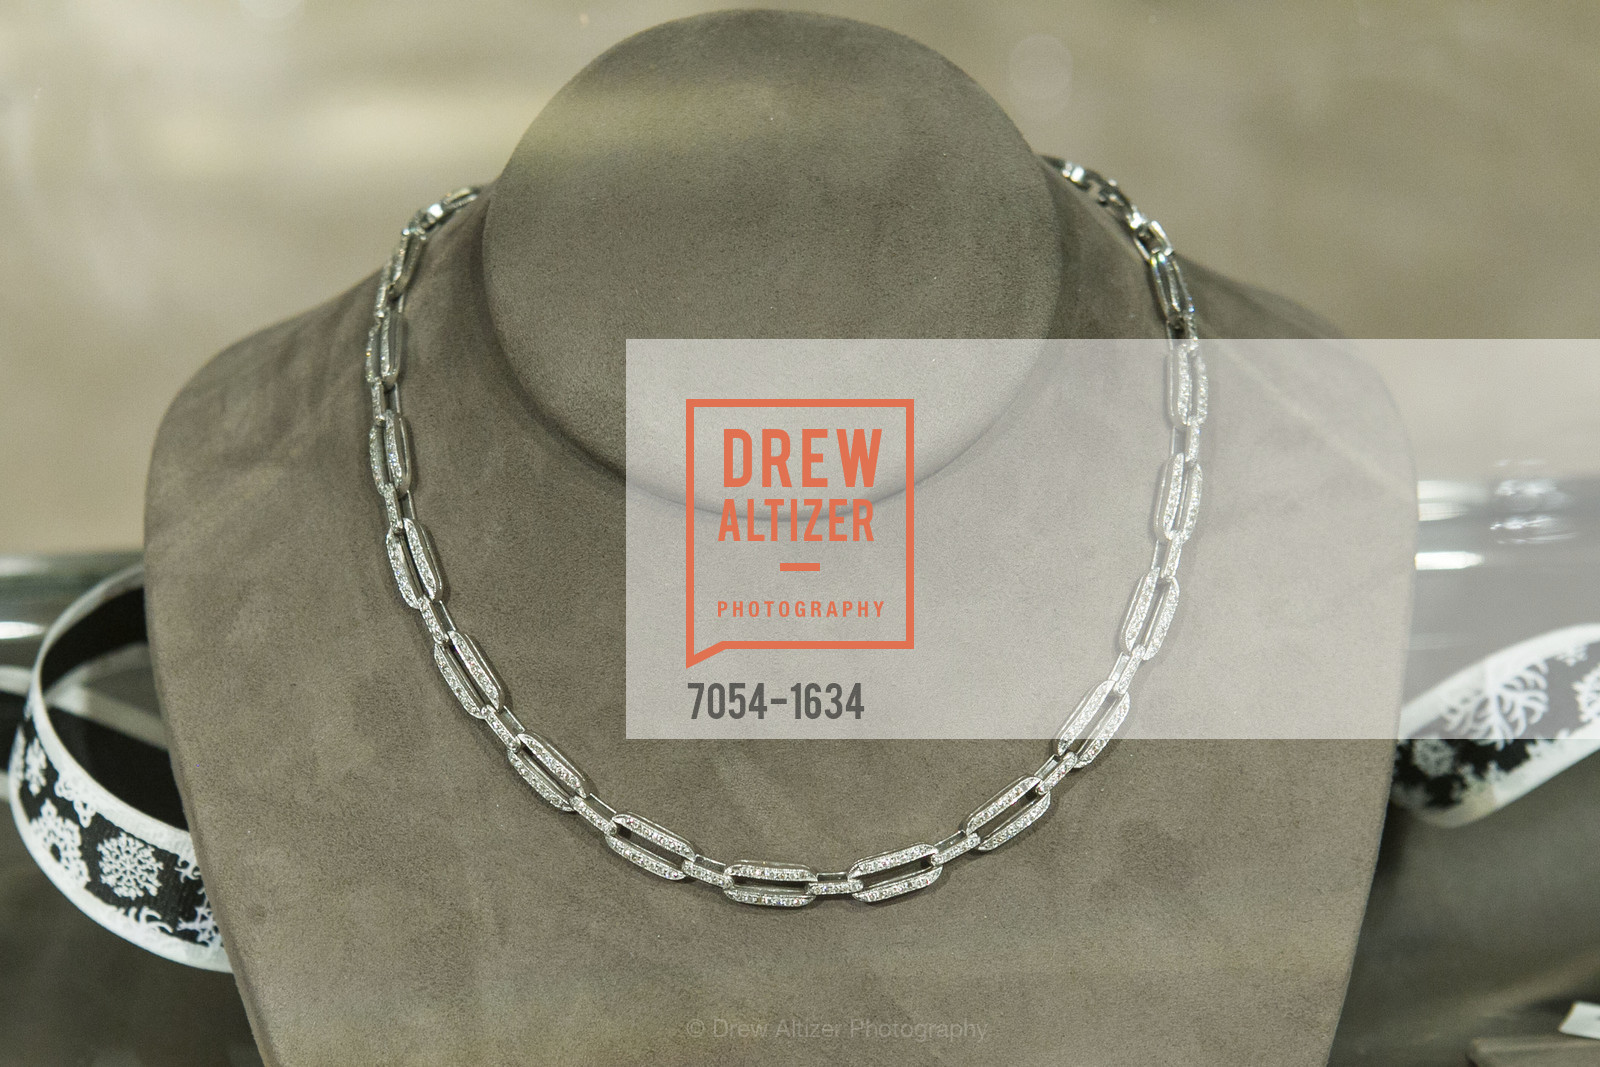 Atmosphere, Photo #7054-1634